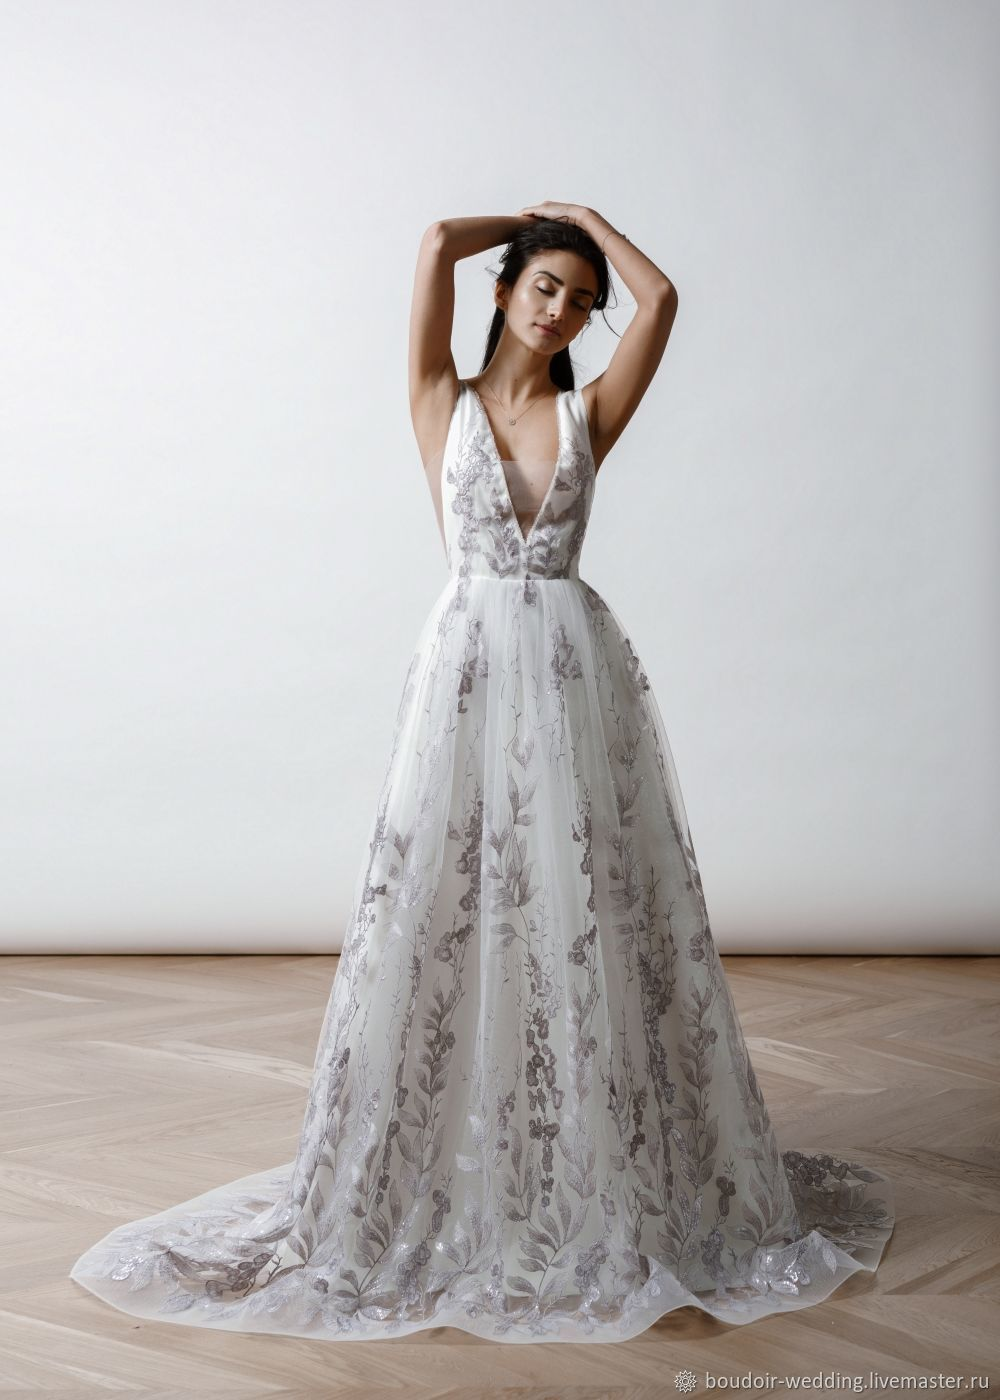 Wedding Dress Lilac Shop Online On Livemaster With Shipping